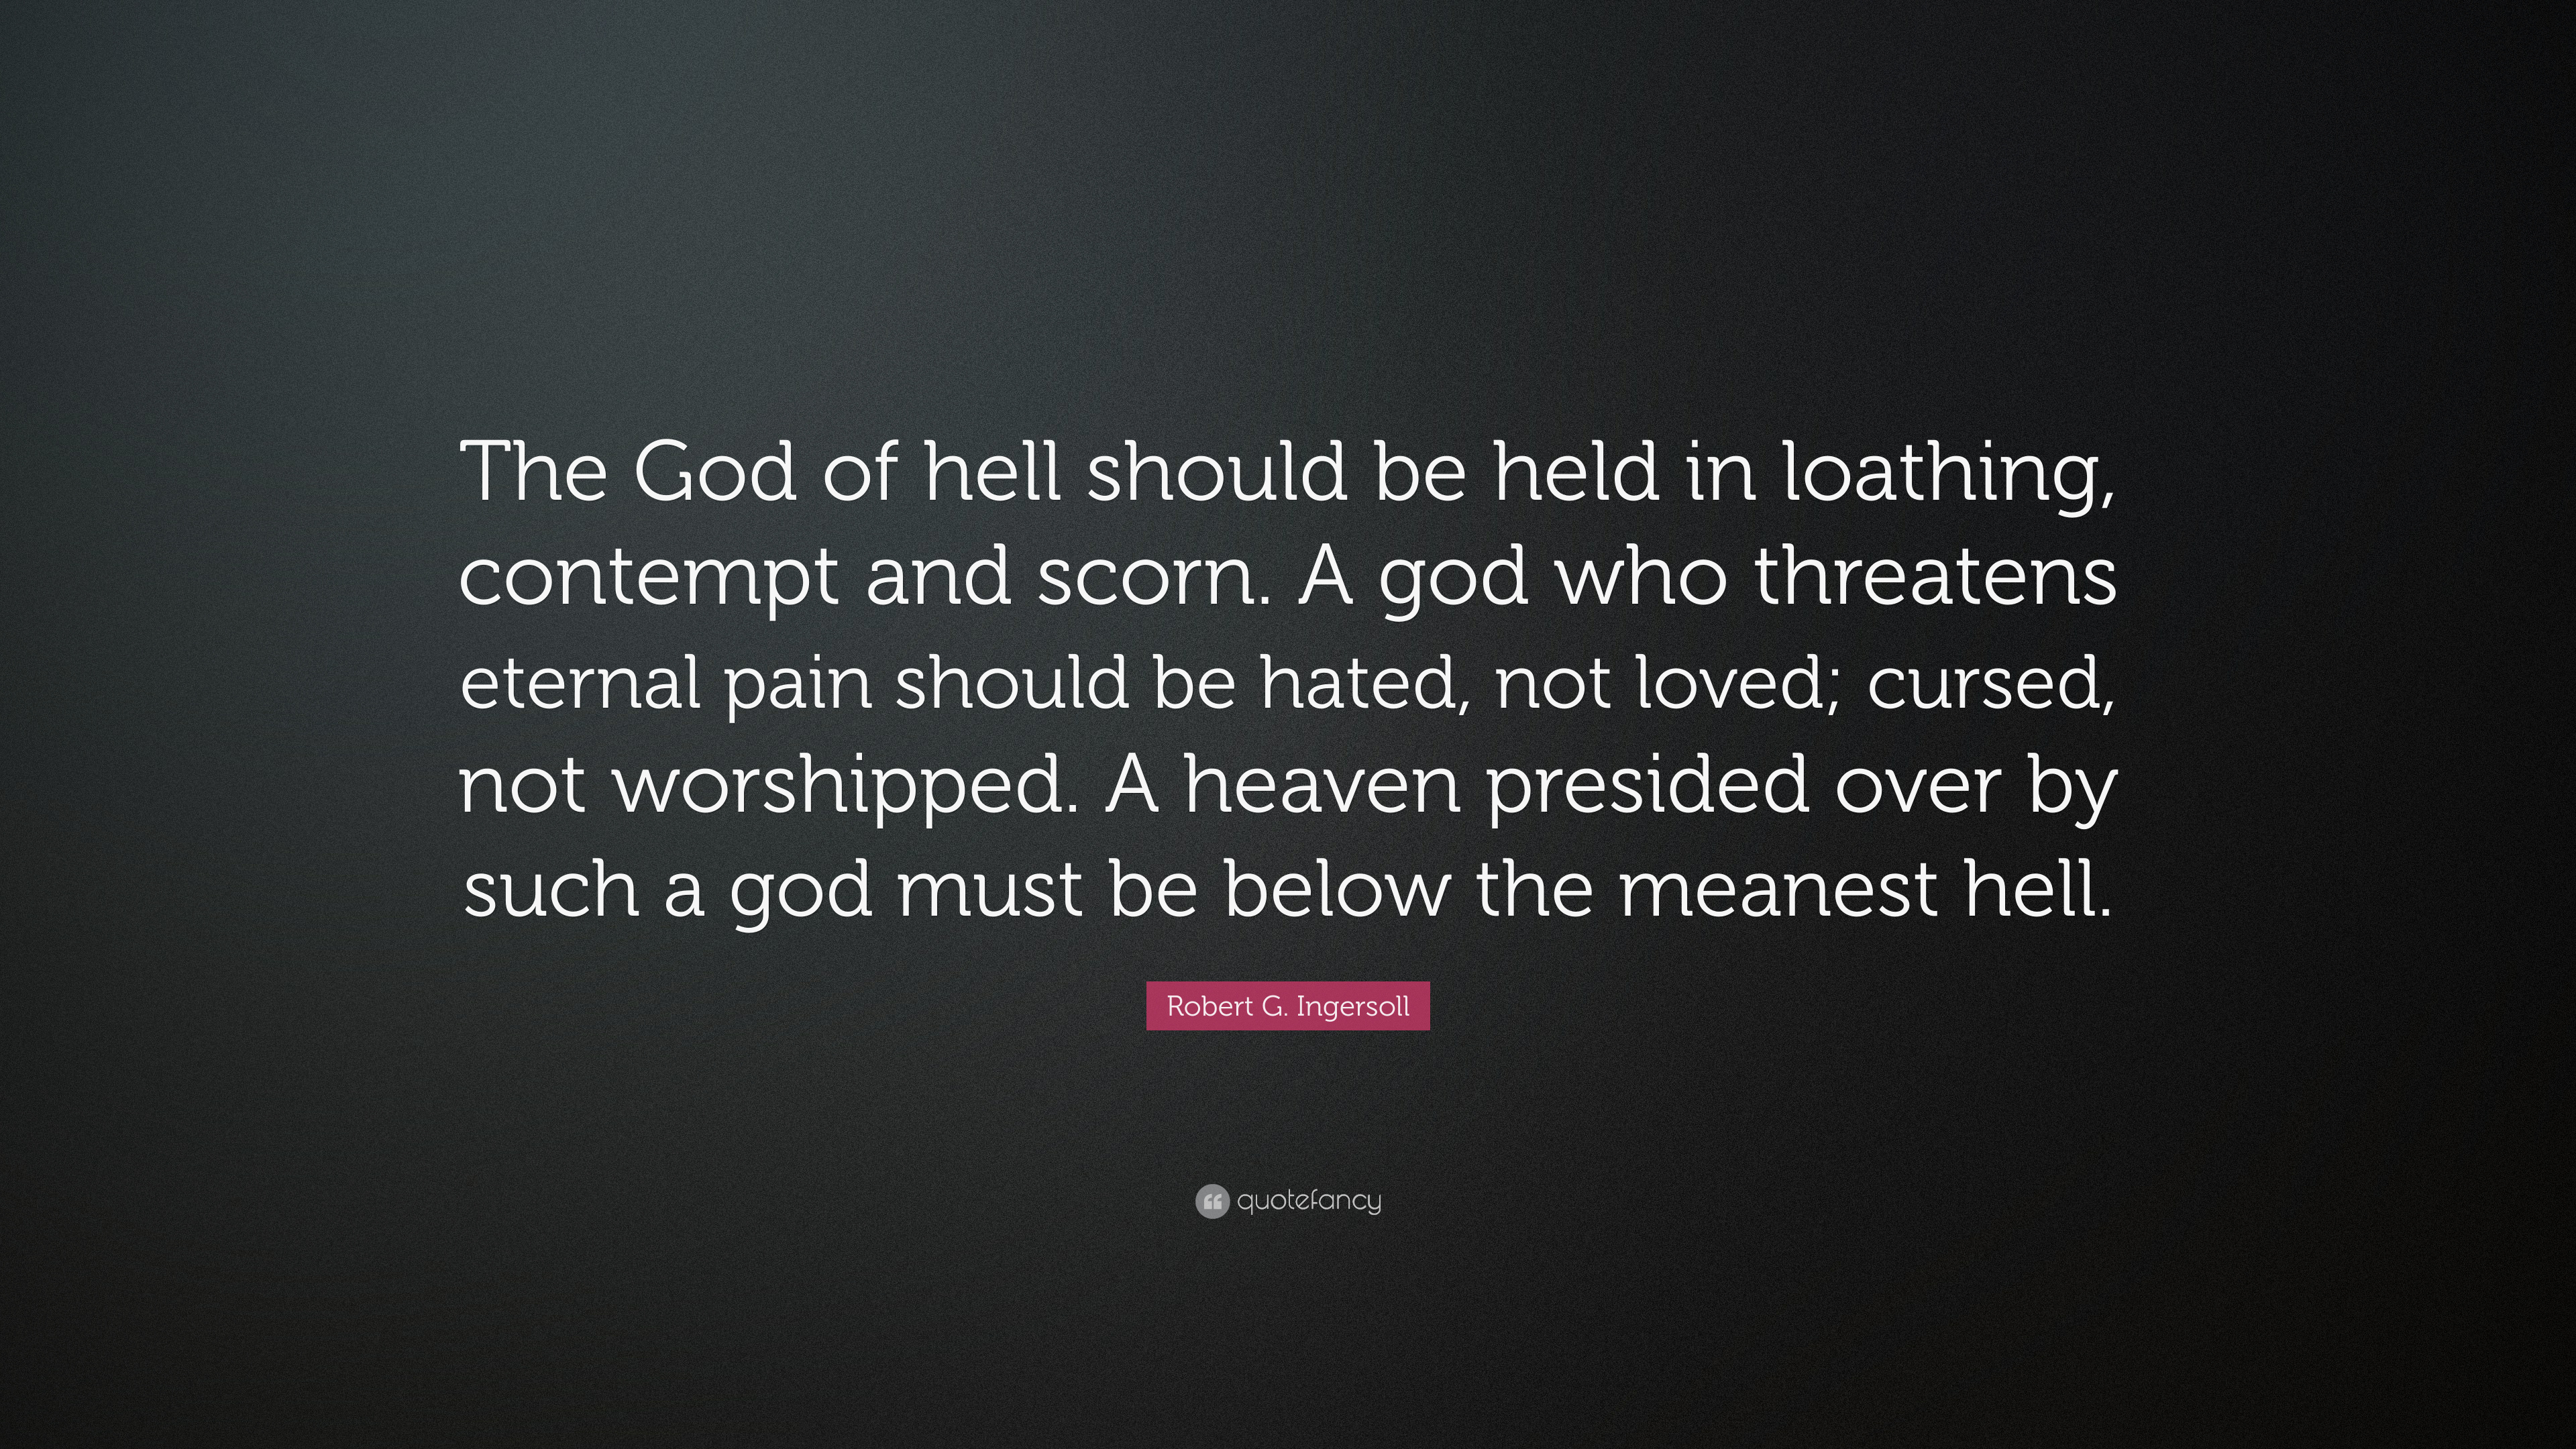 Robert G Ingersoll Quote The God Of Hell Should Be Held In